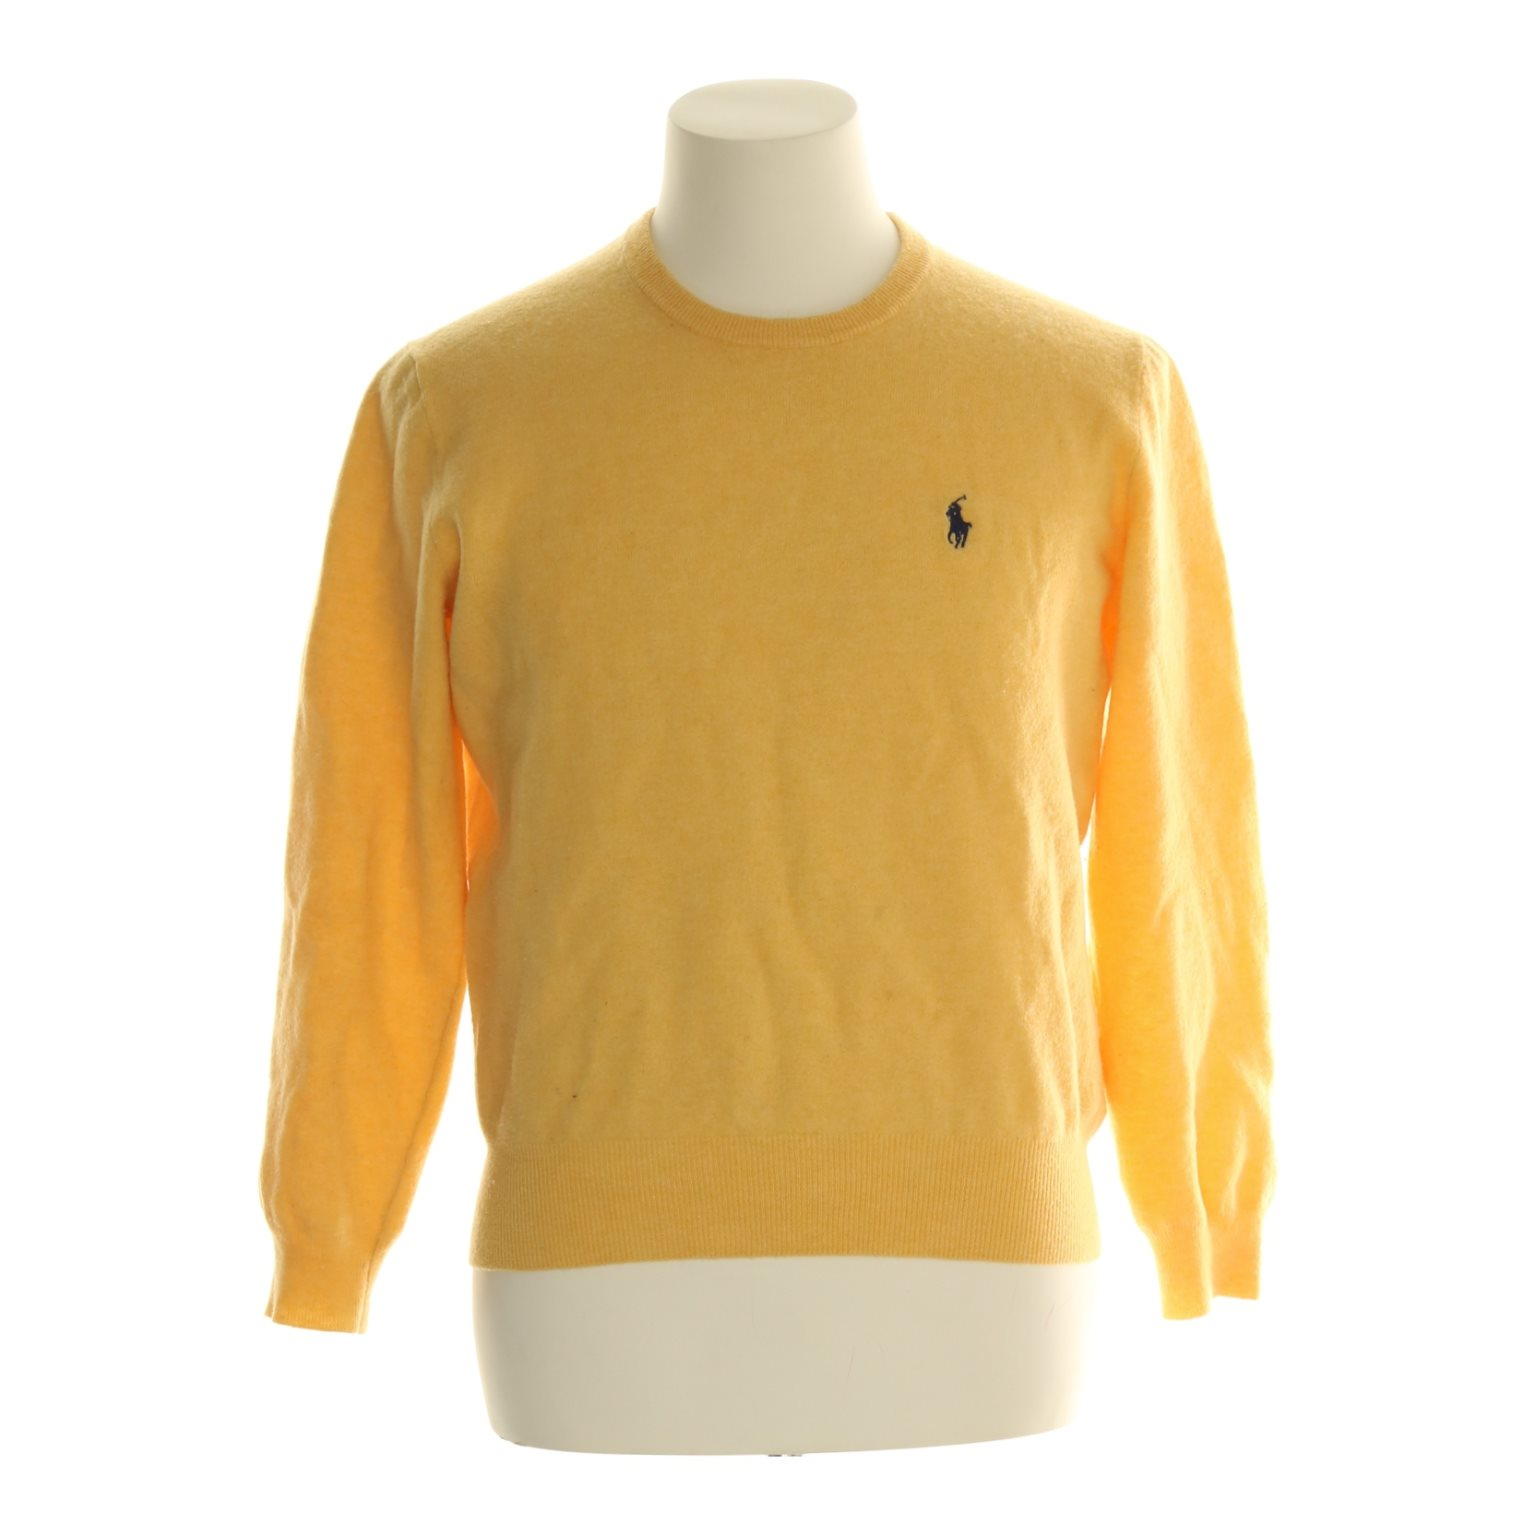 5a998569c where to buy gul polo sweater d2169 5d744